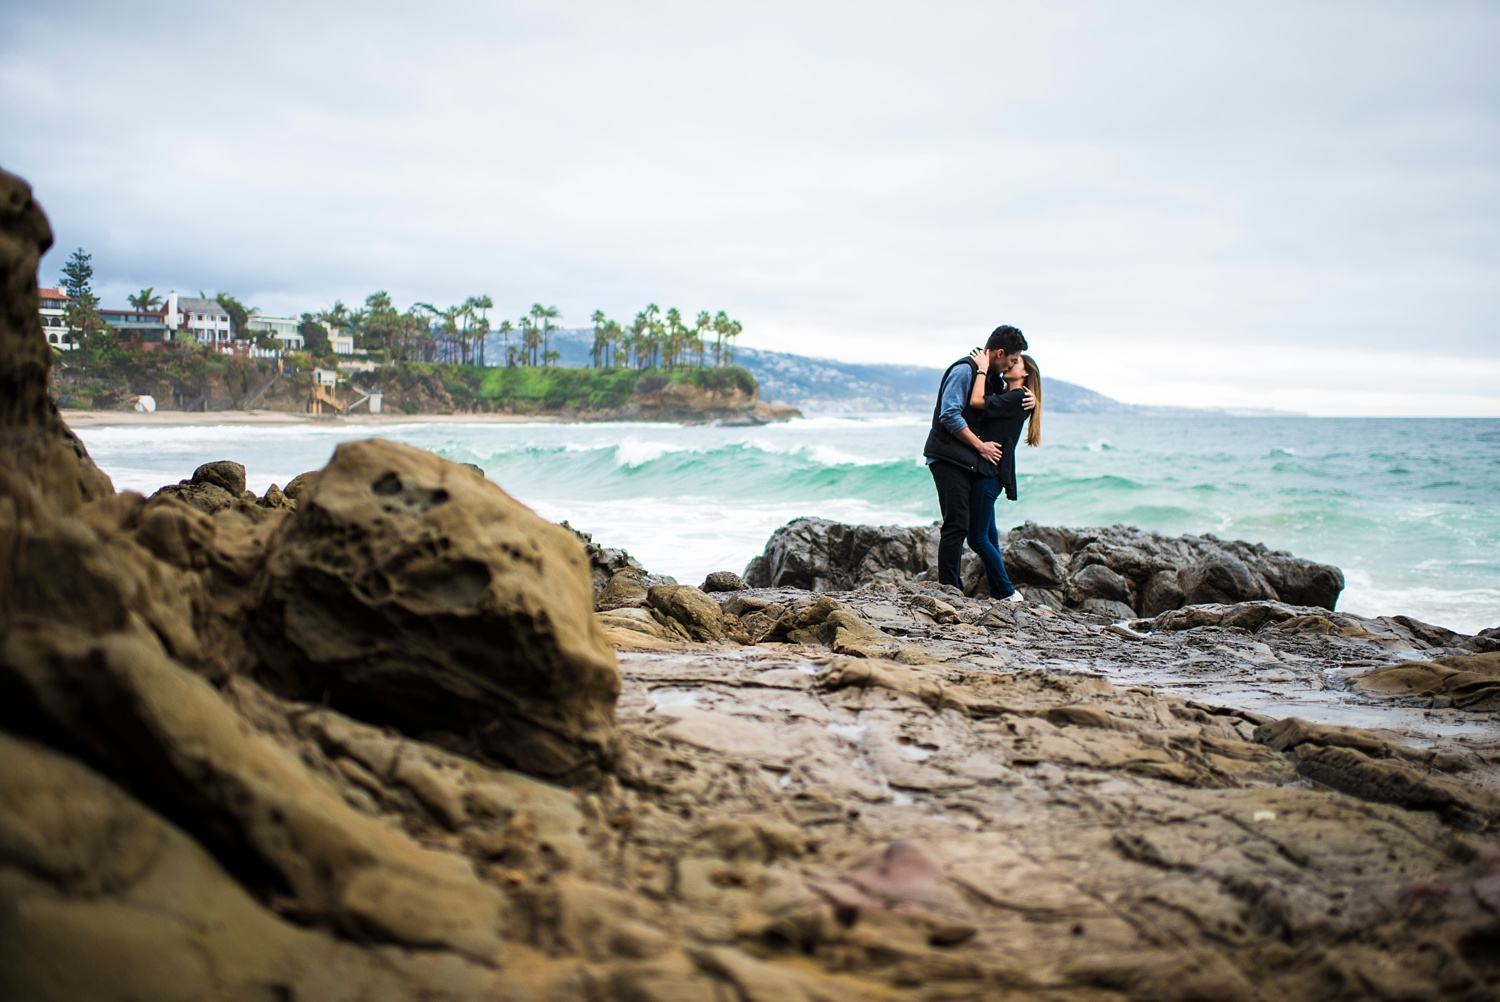 Nate-shepard-photography-engagment-california-wedding-photographer-denver-laguna-beach_0011.jpg